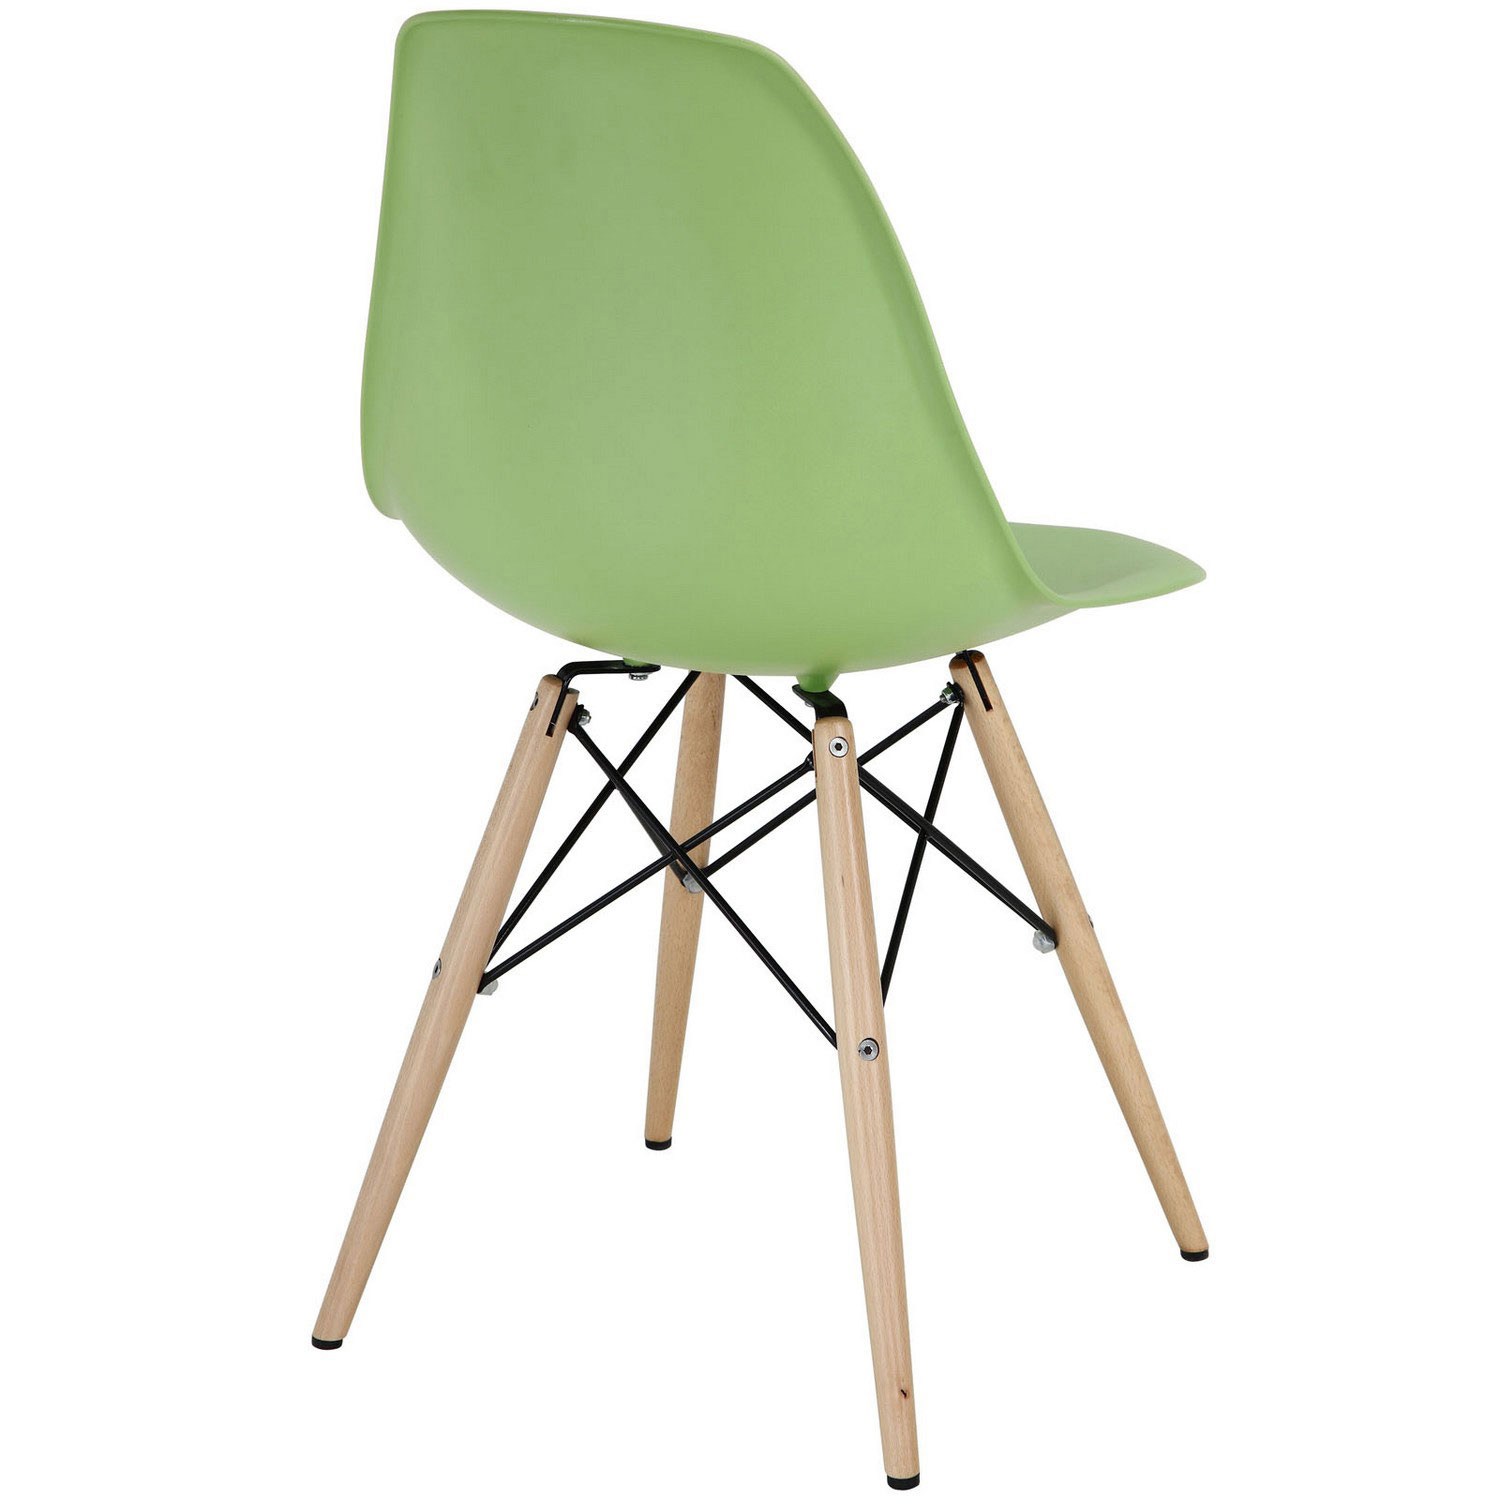 Modway Pyramid Dining Side Chair - Light Green